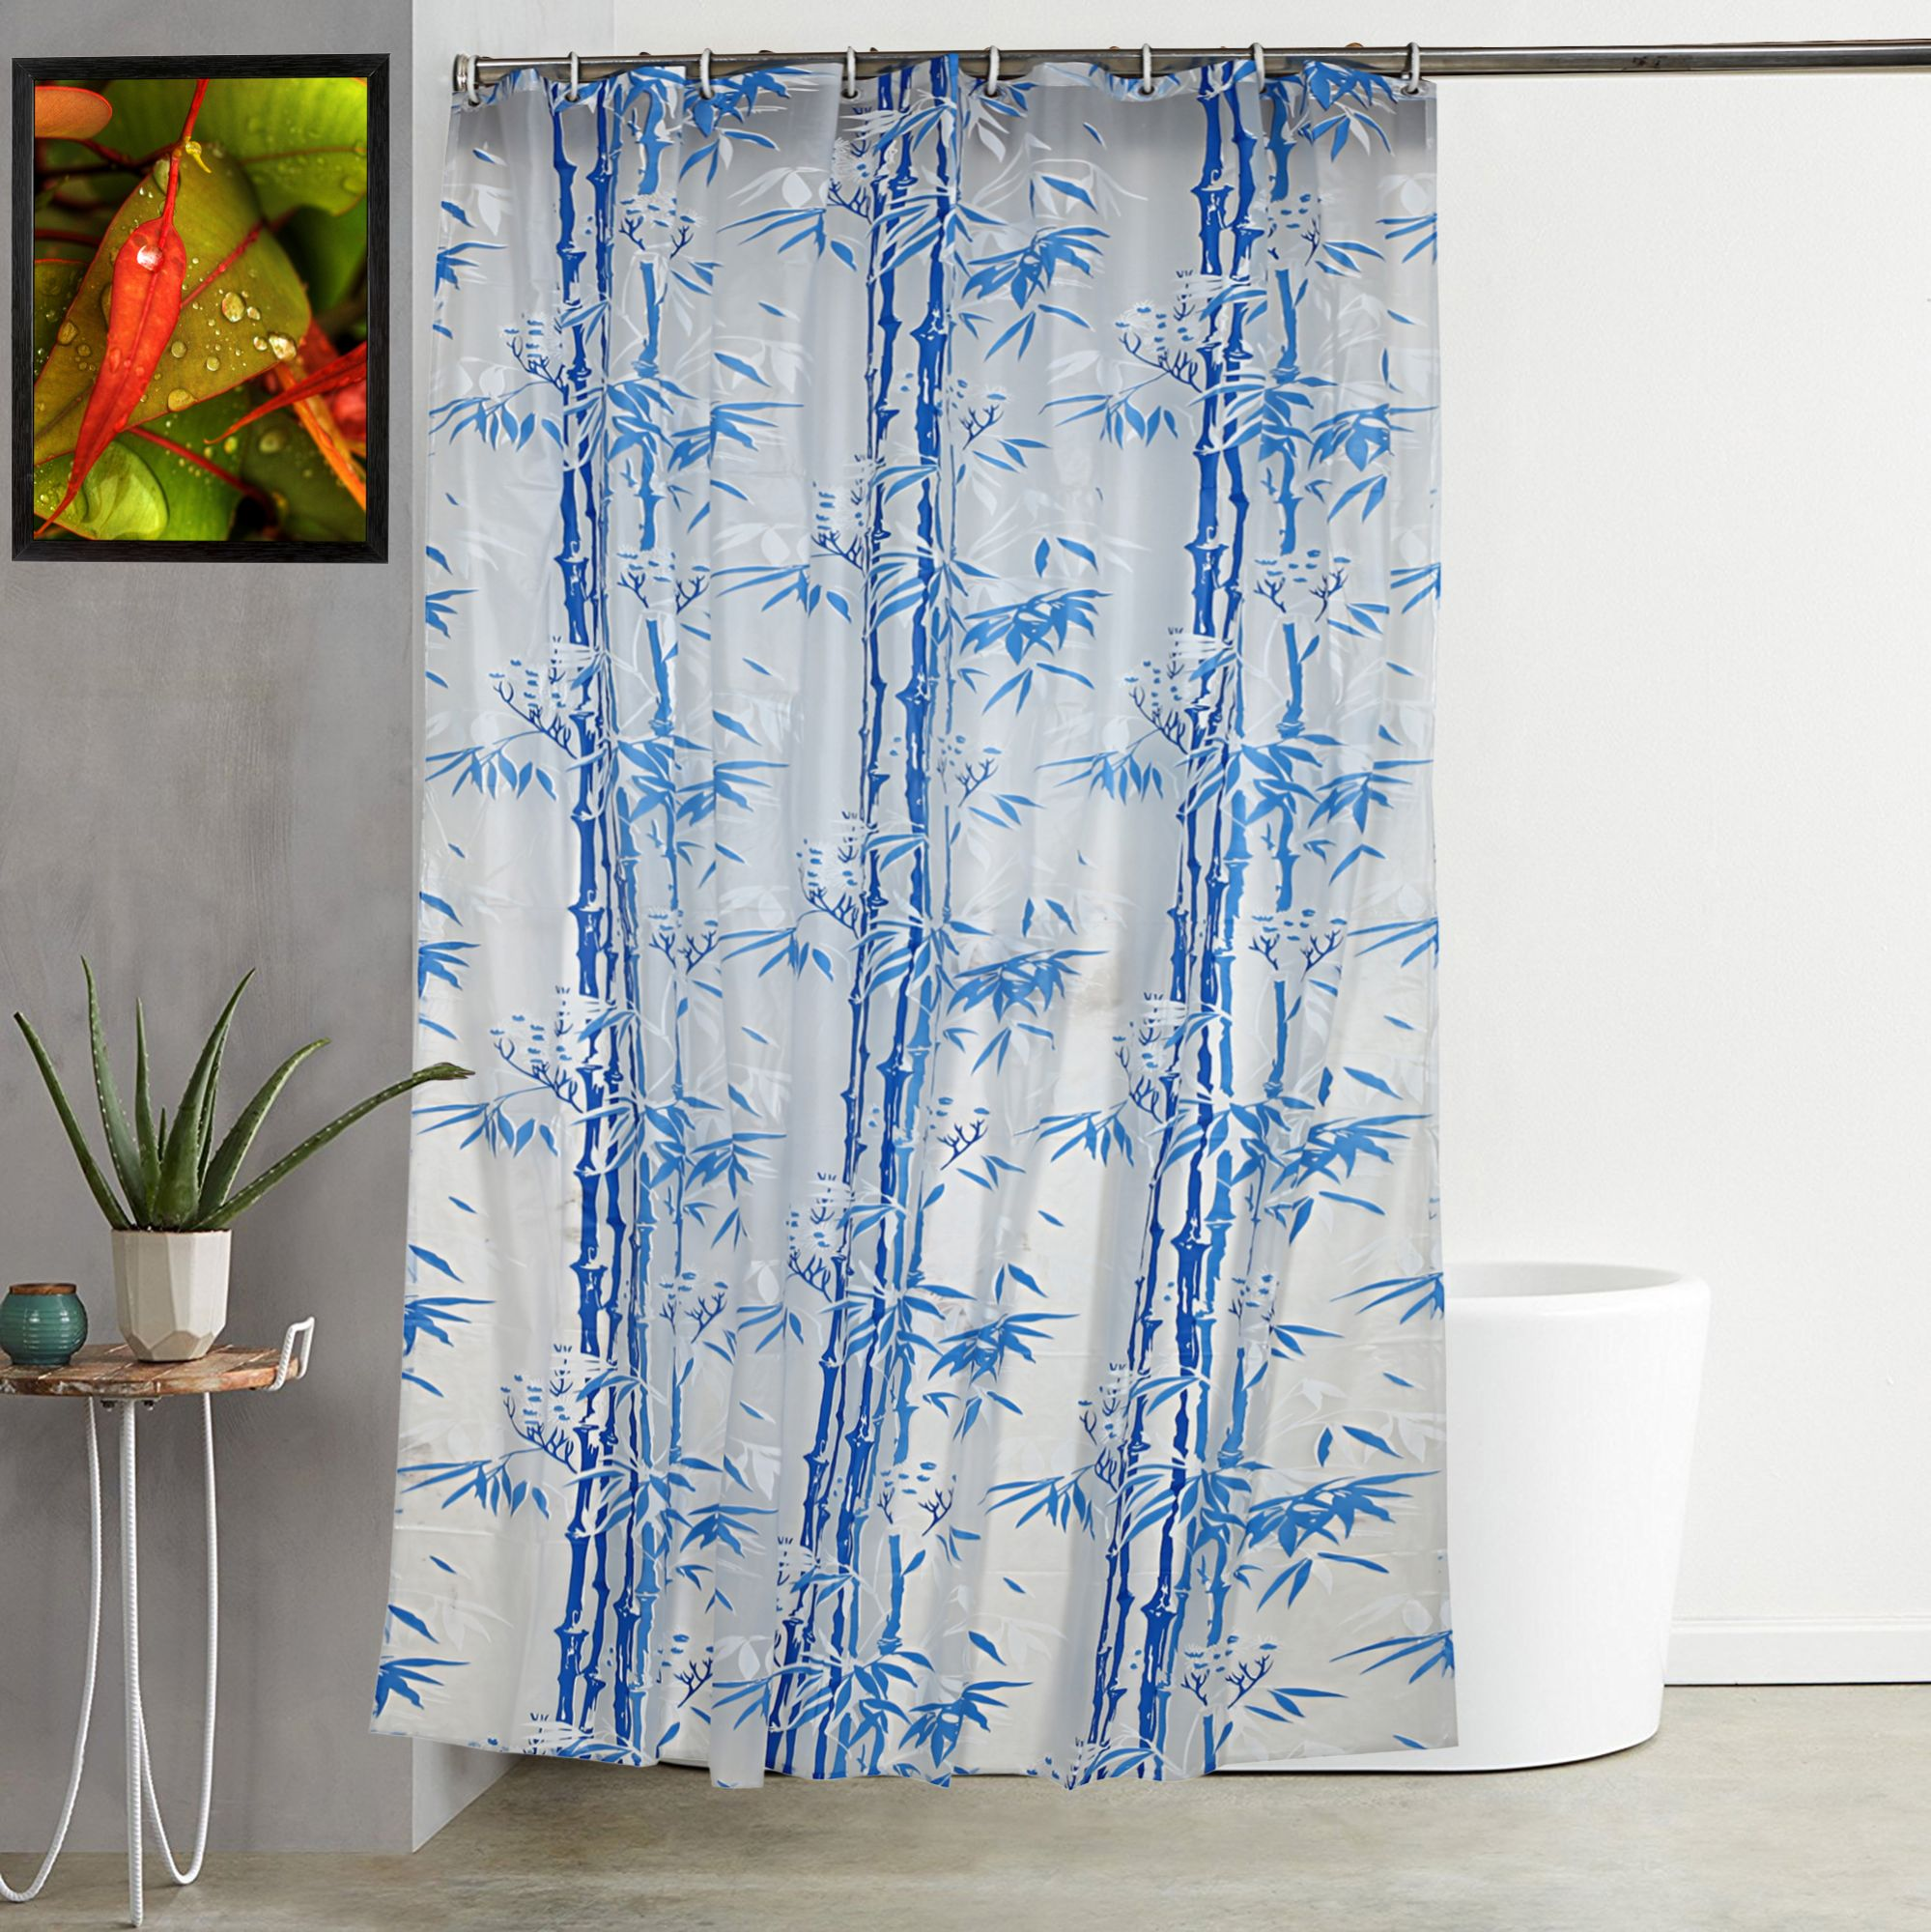 Kuber Industries PVC 7 Feet Shower Curtain with 8 Hooks (Blue)-CTKTC3911